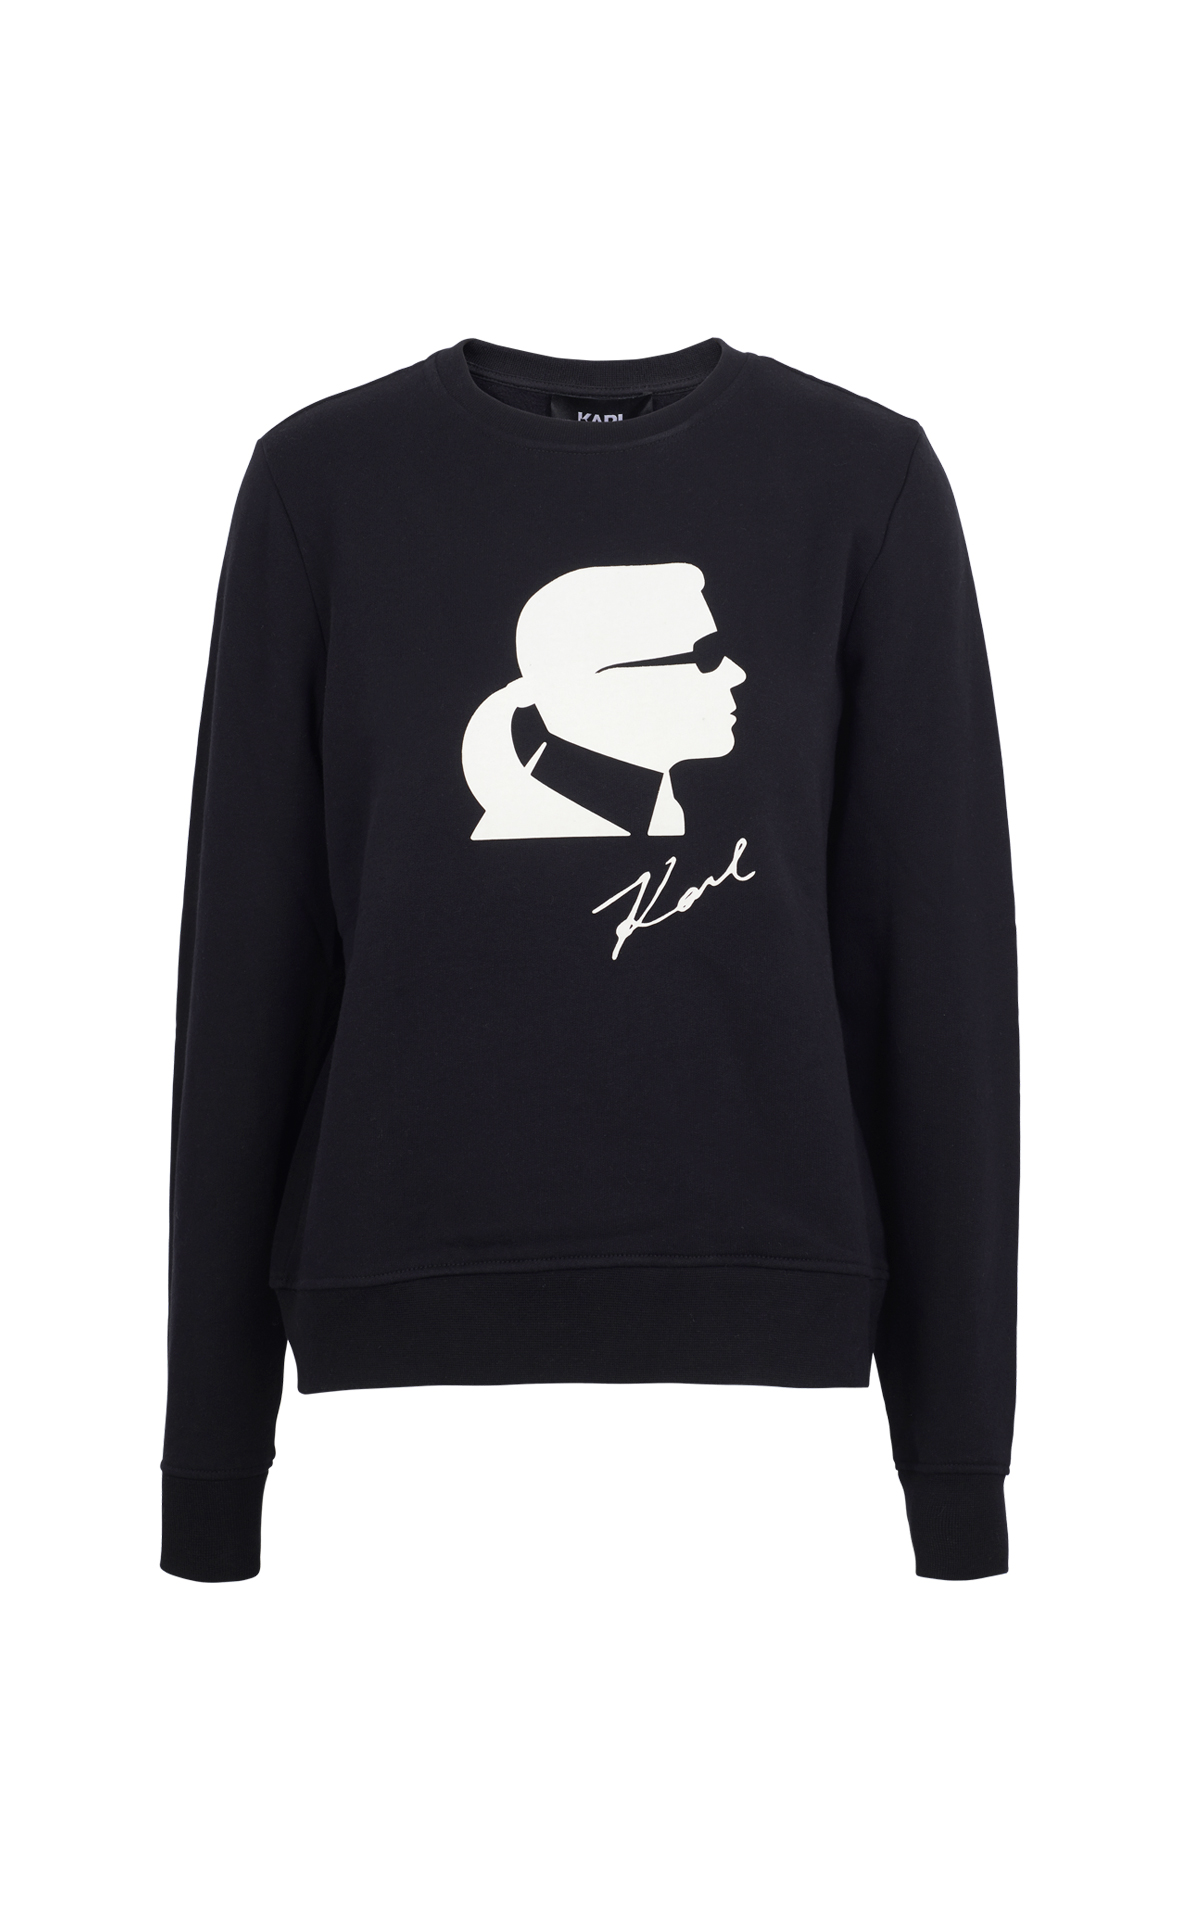 Black sweater with Karl Karl Lagerfedl